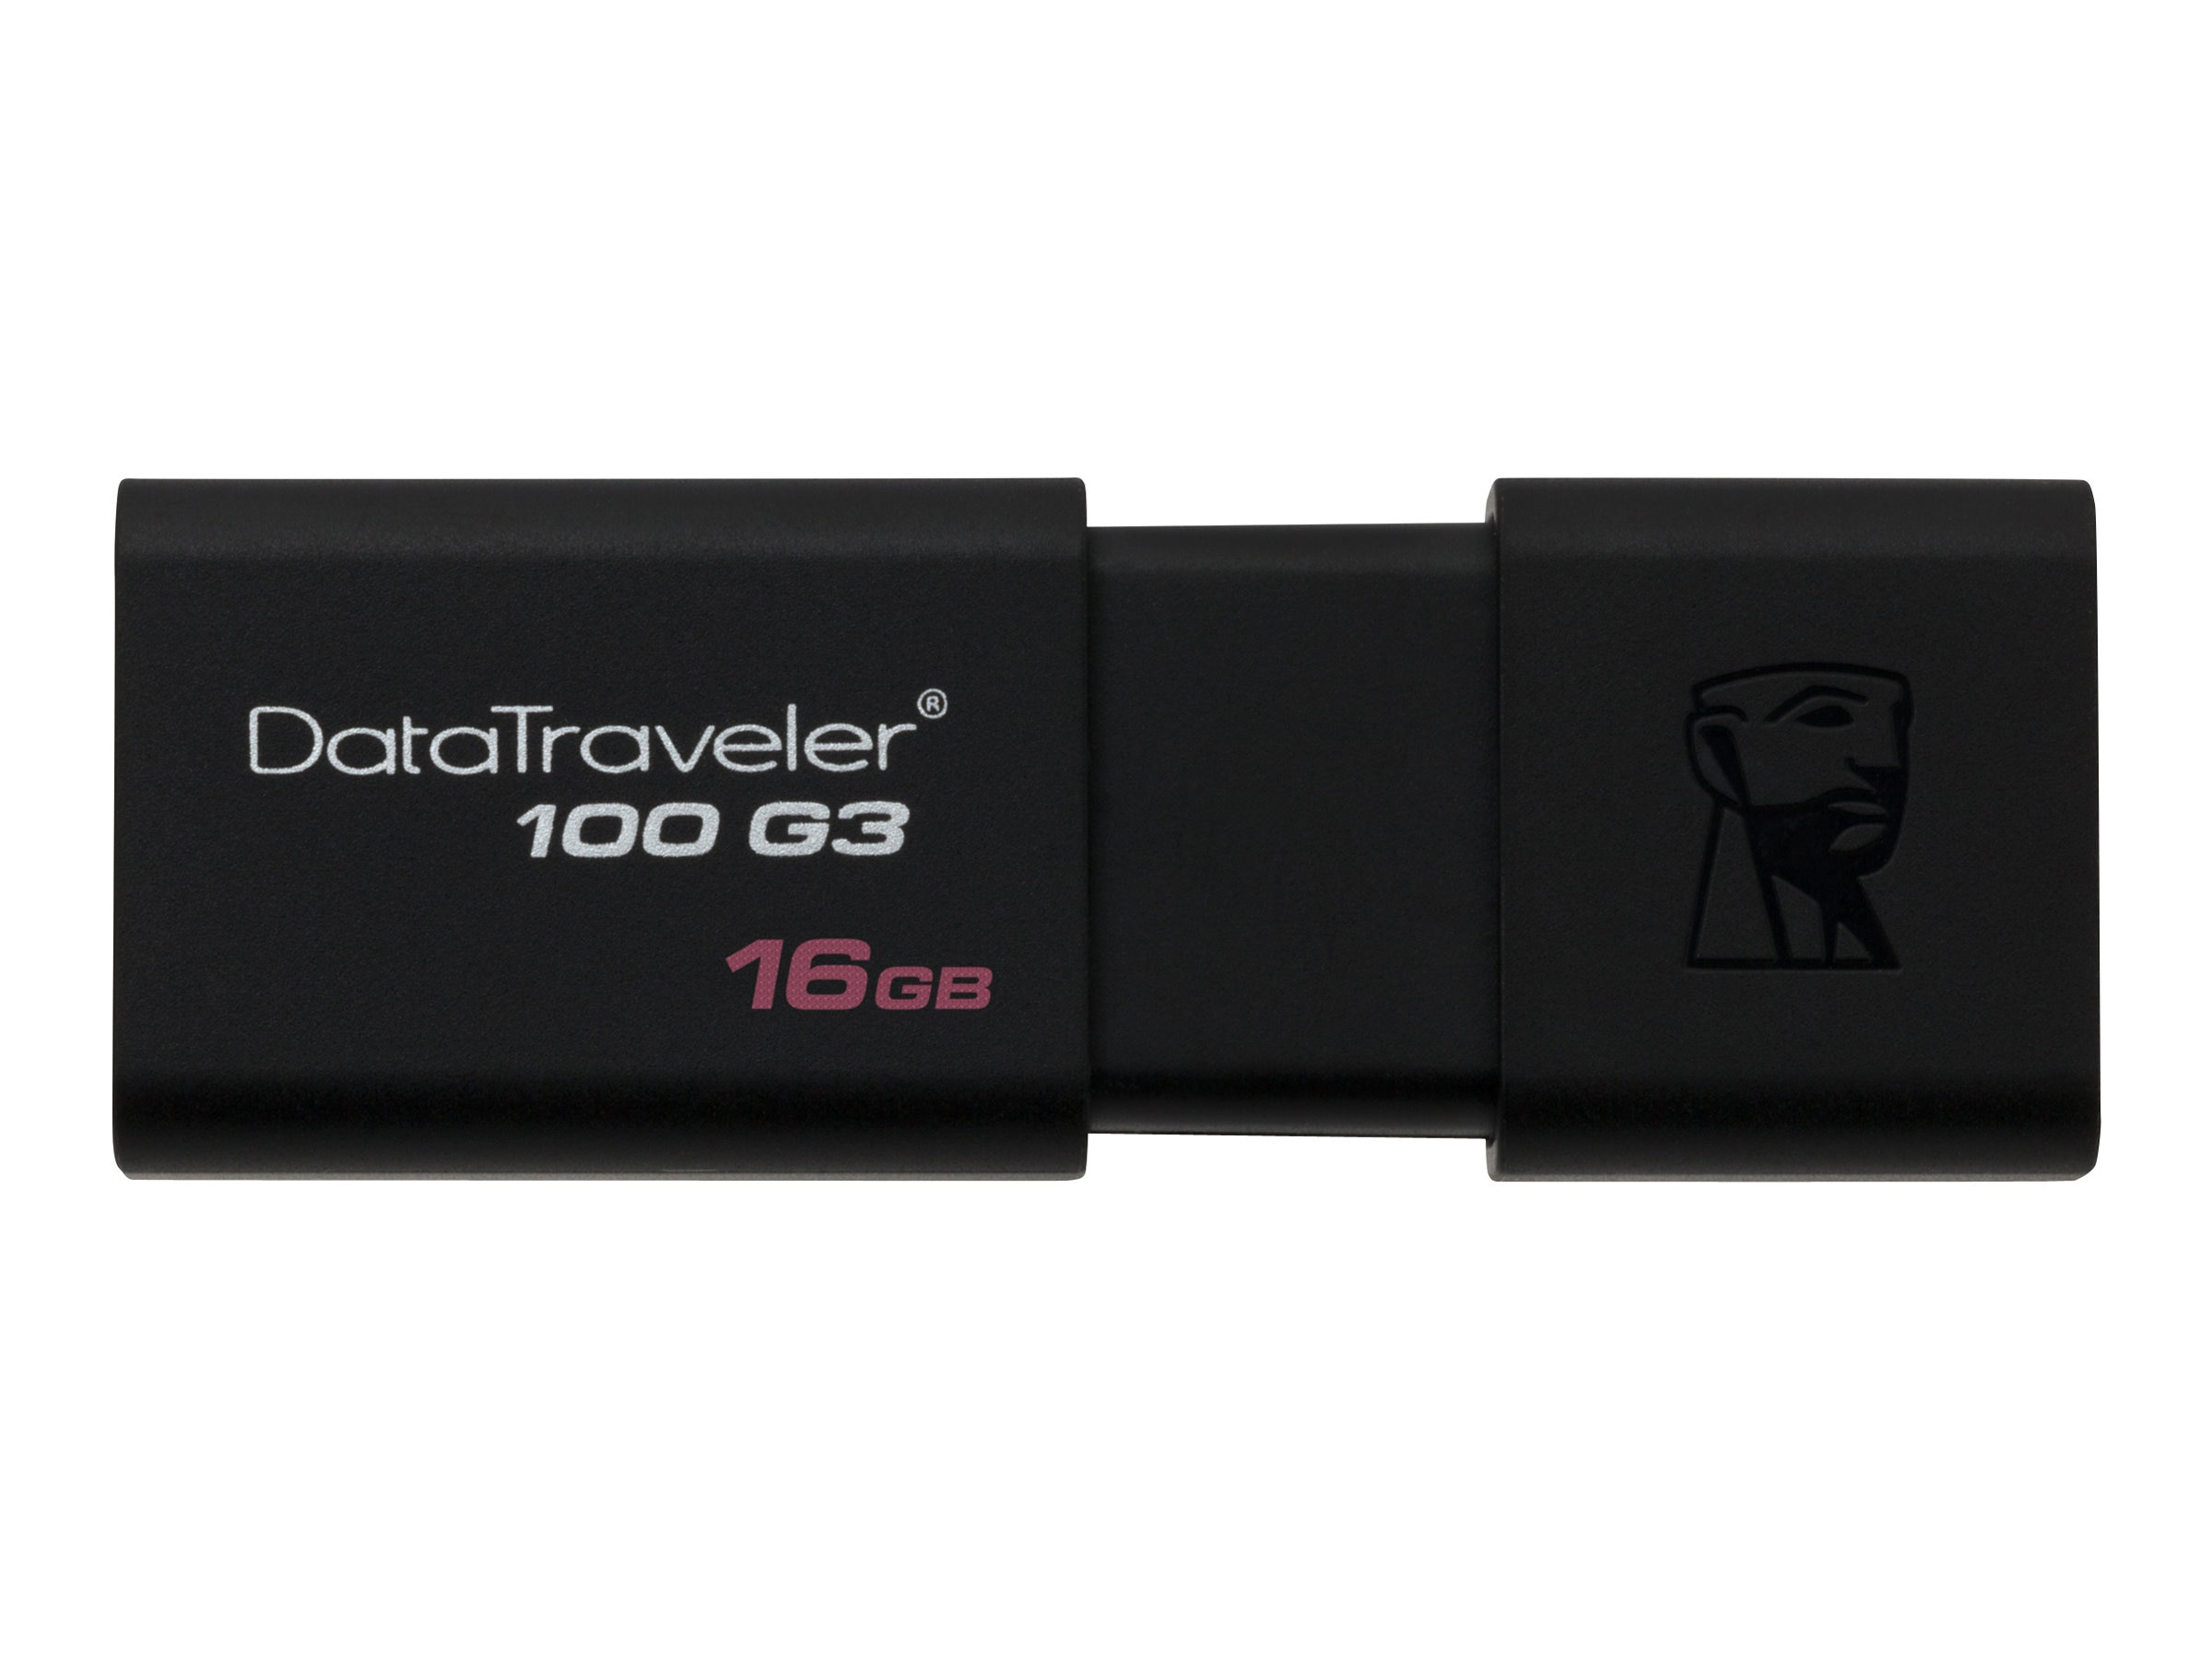 Kingston 16GB DataTraveler 100 G3 USB 3.0 Flash Drive, DT100G3/16GB, 15562241, Flash Drives